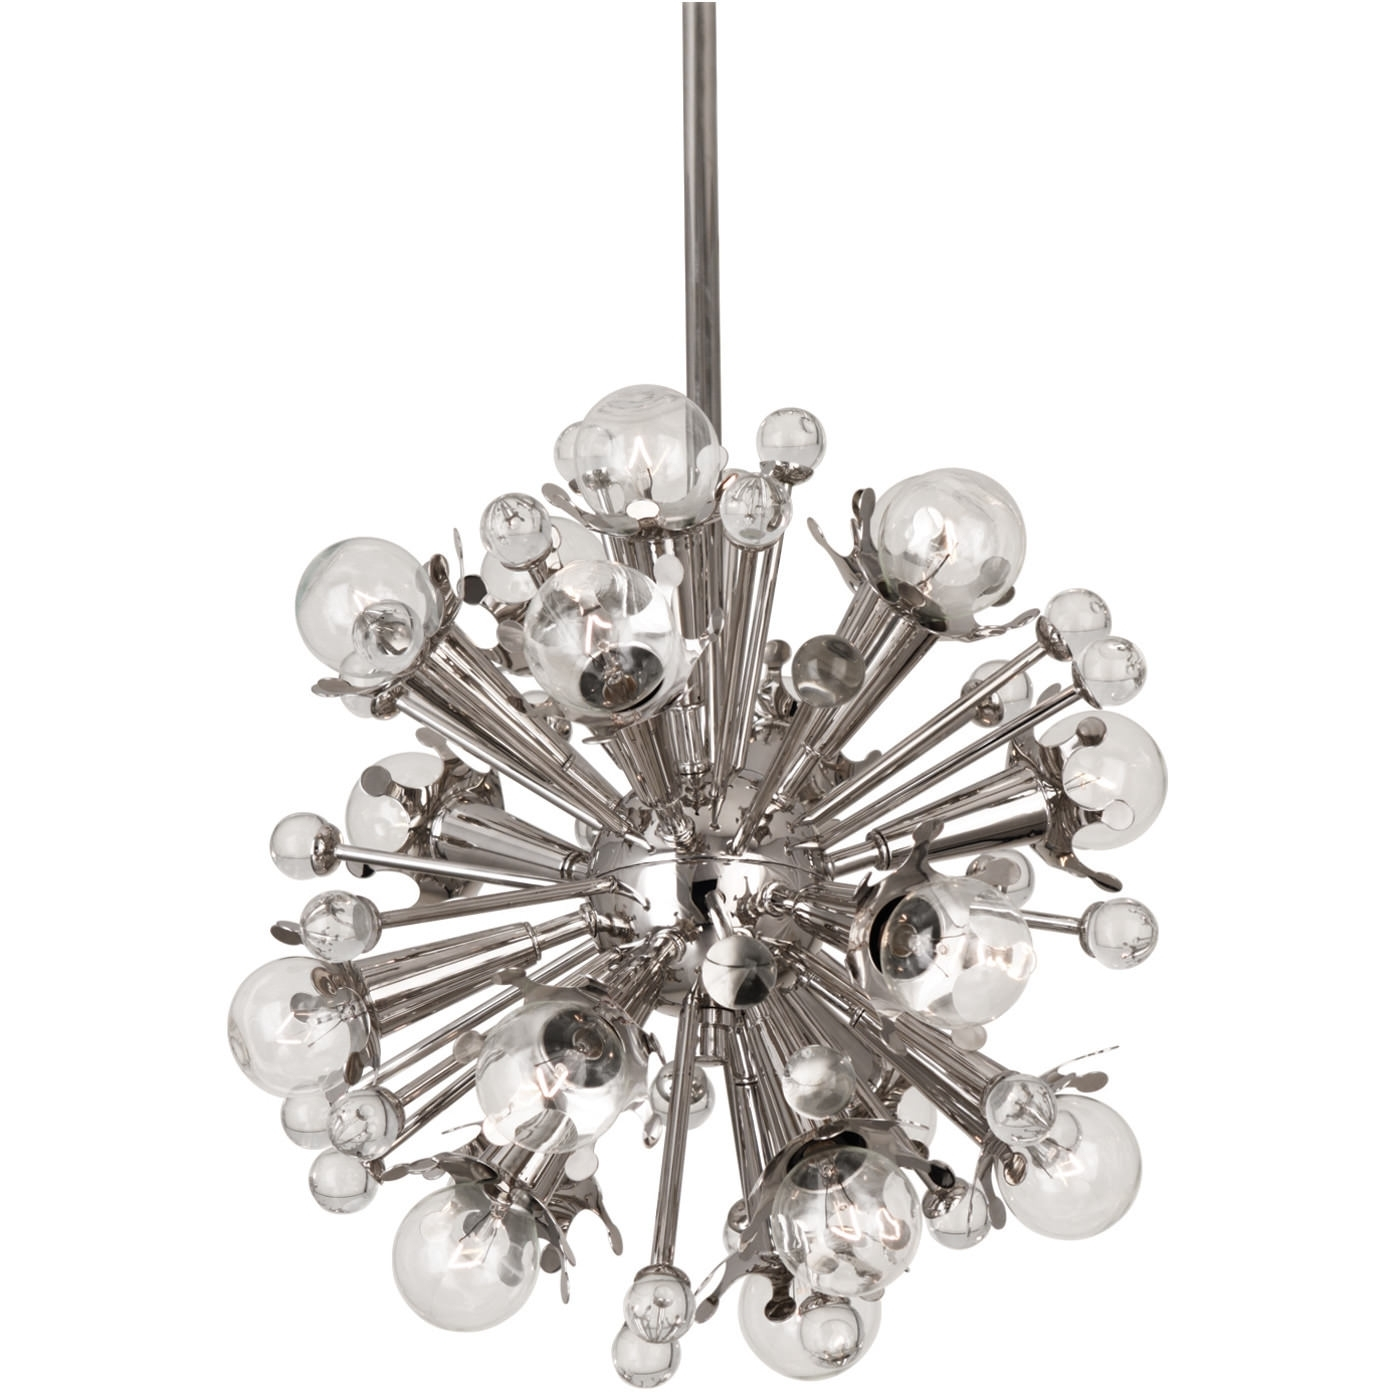 Jonathan Adler Within Favorite Mini Sputnik Chandeliers (Gallery 1 of 20)